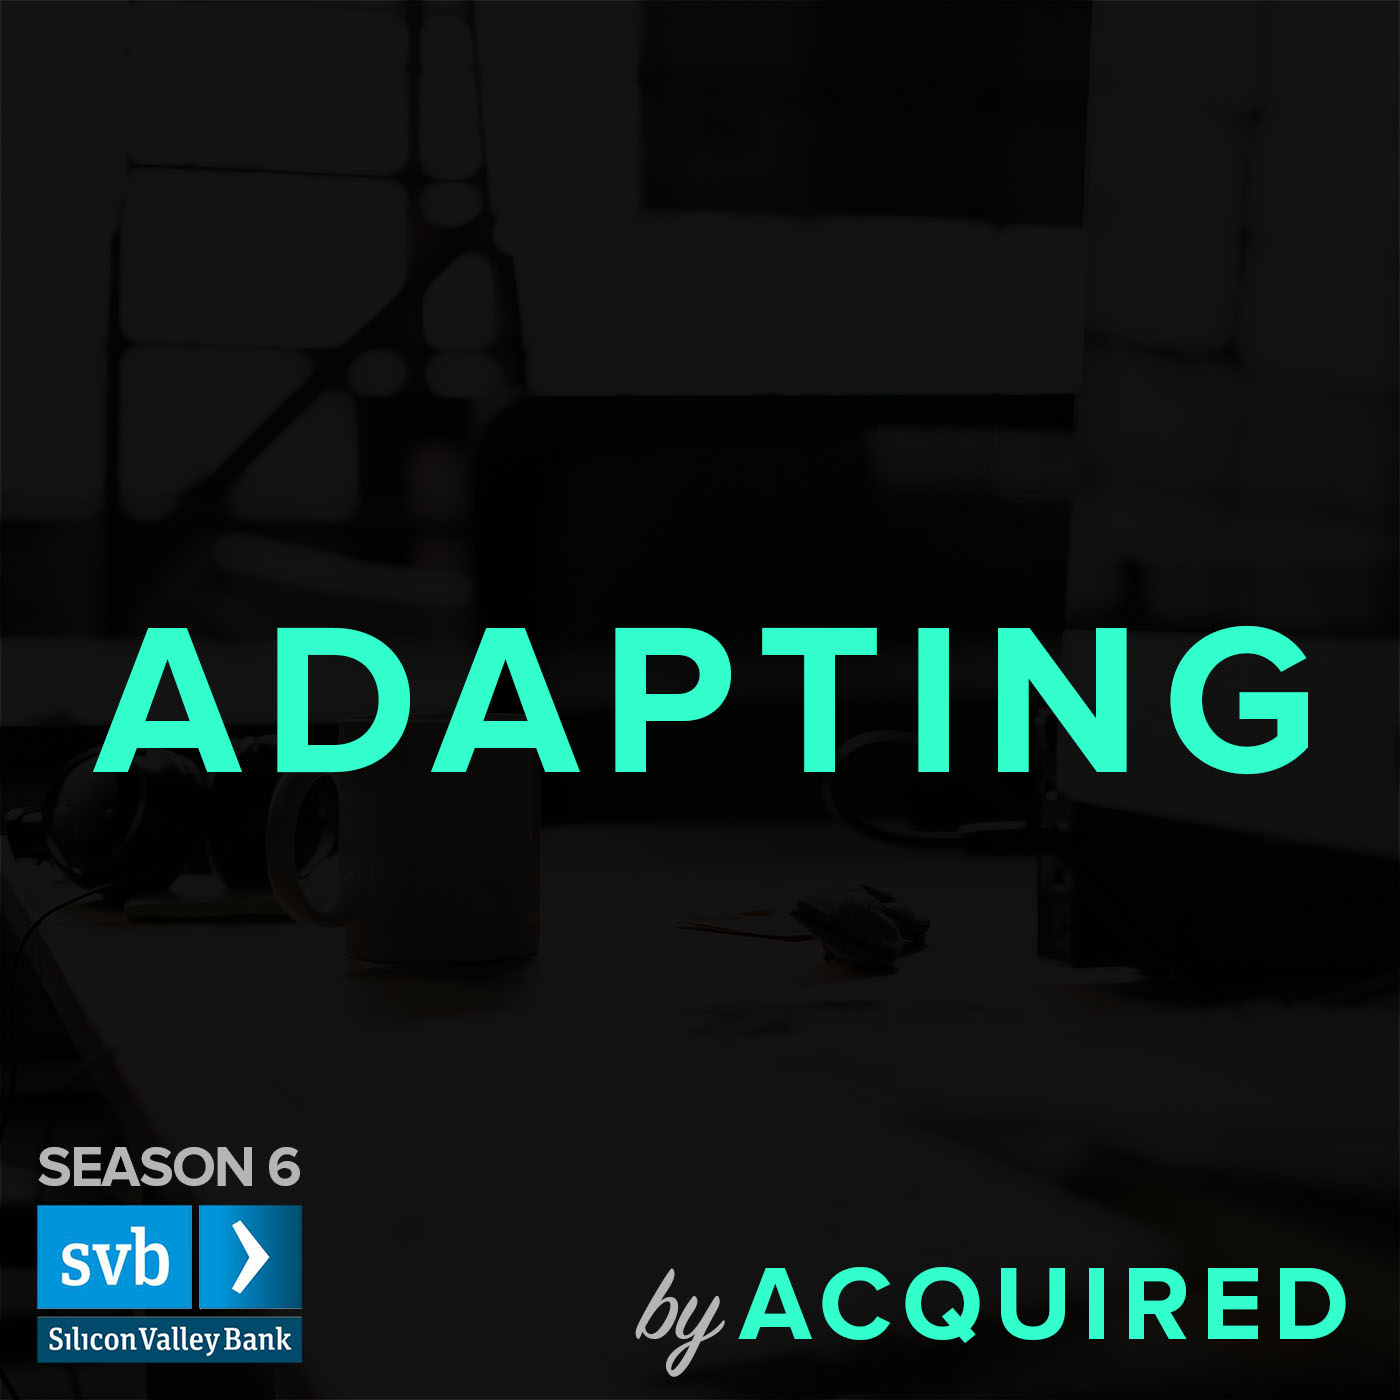 Adapting Episode 2: Sequoia's Black Swan Memo (with Roelof Botha)